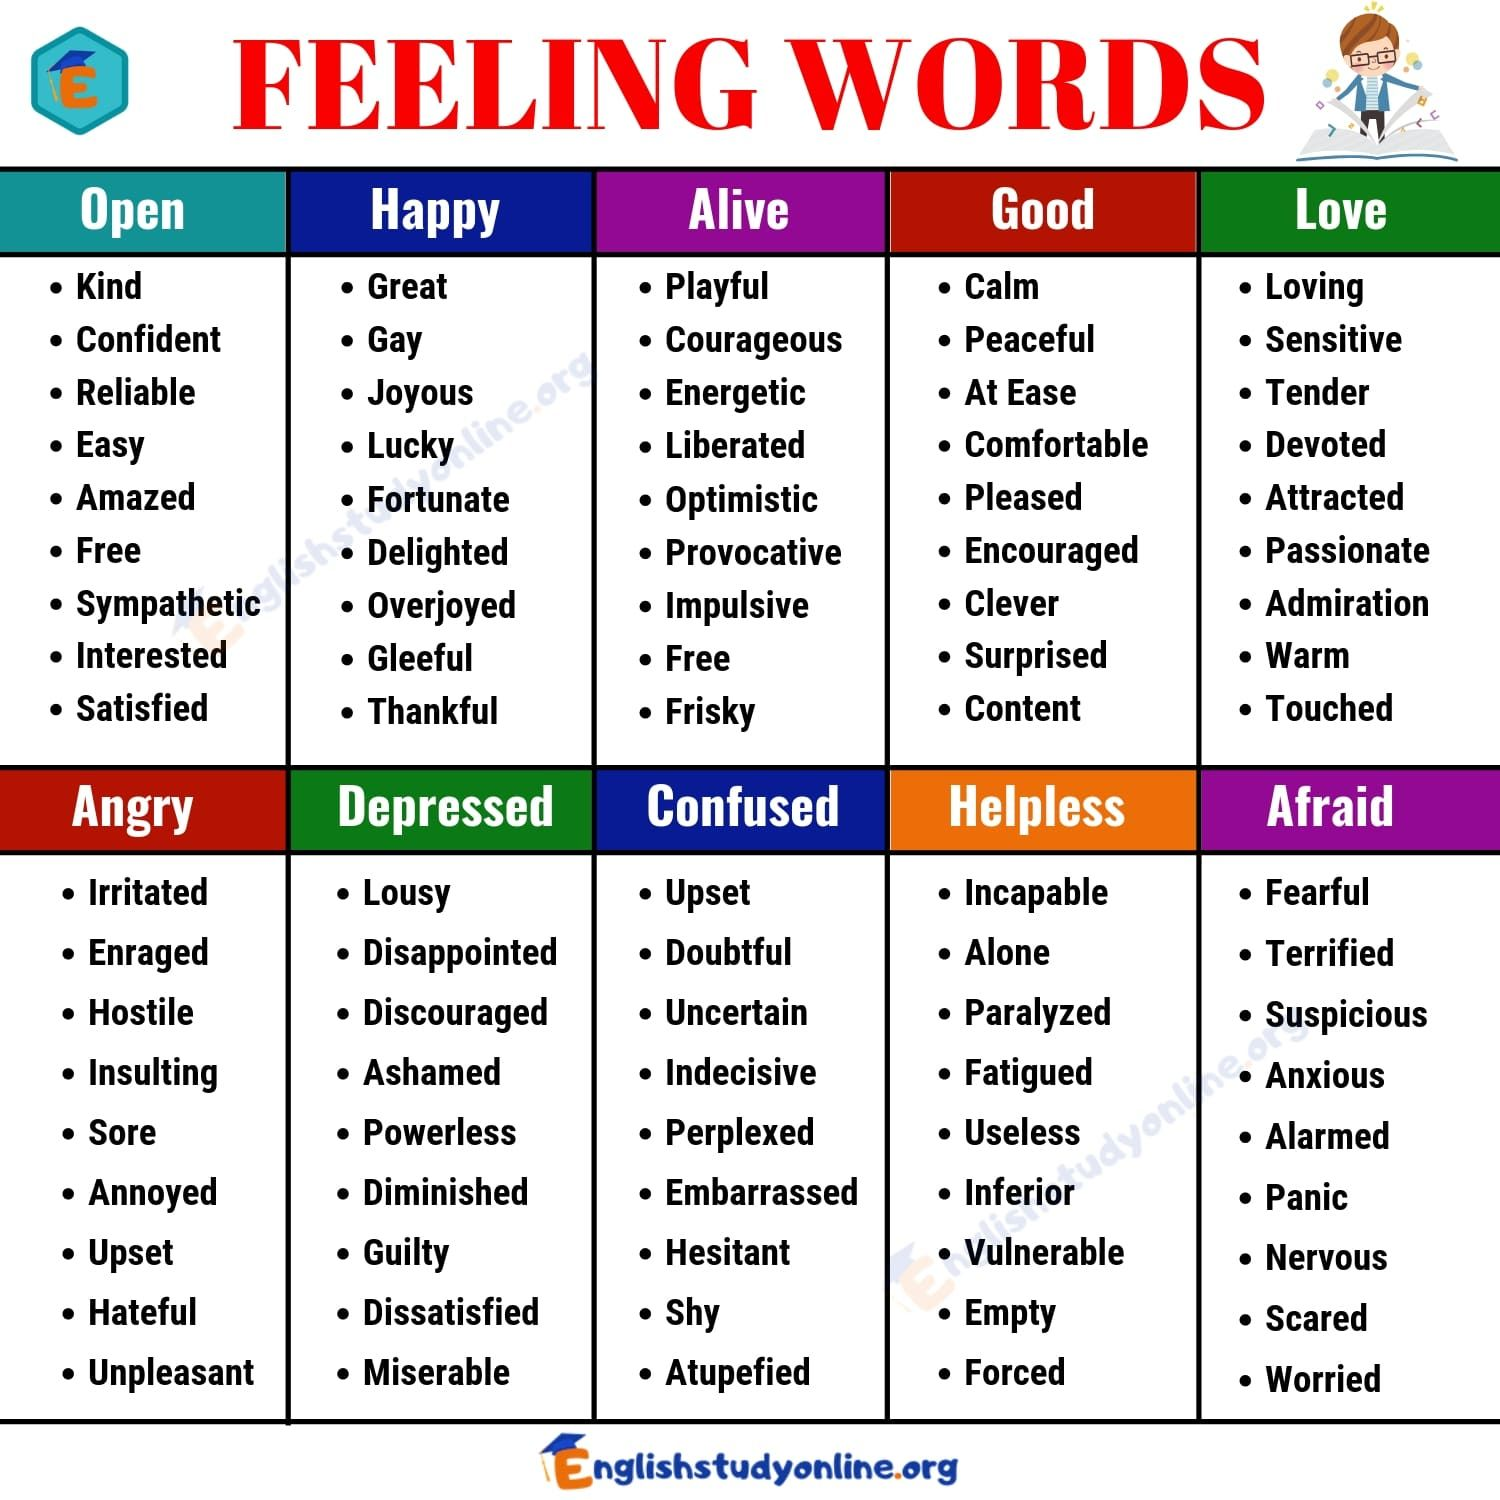 Useful List Of 100 Feeling Words With Images Feelings Words